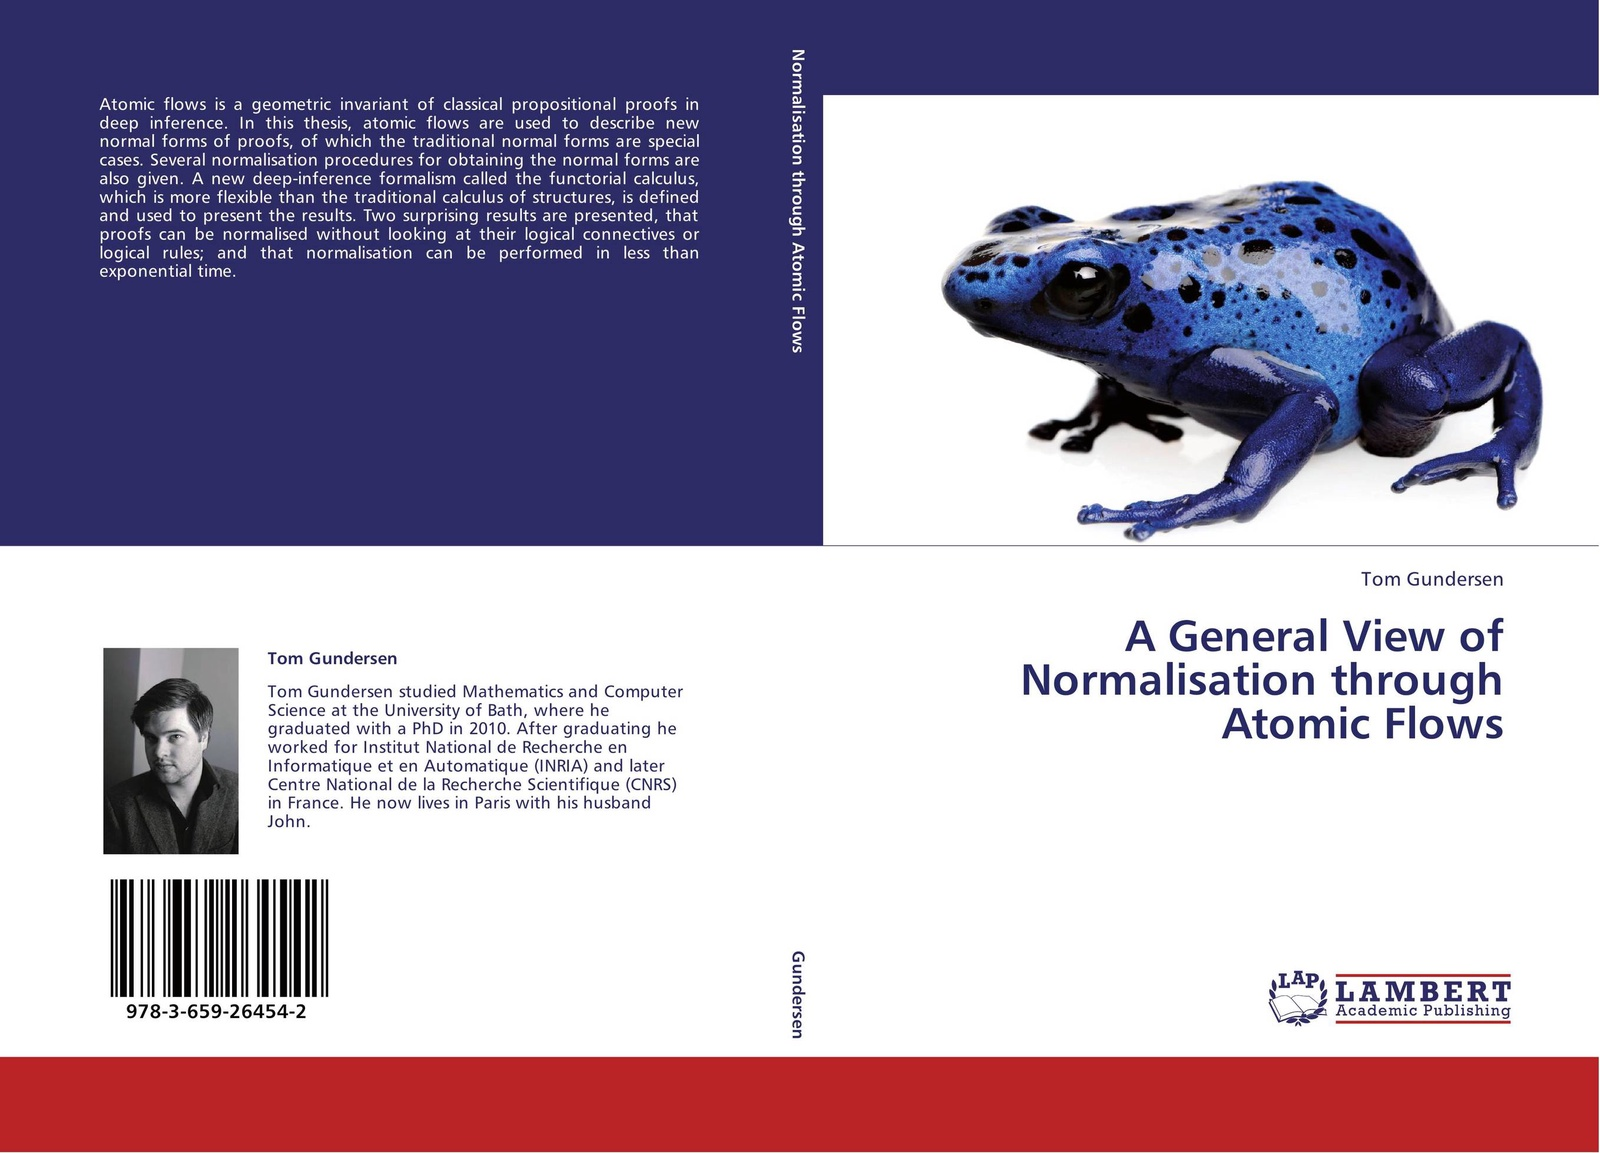 Tom Gundersen A General View of Normalisation through Atomic Flows 1c31122g01 used in good condition can normal working